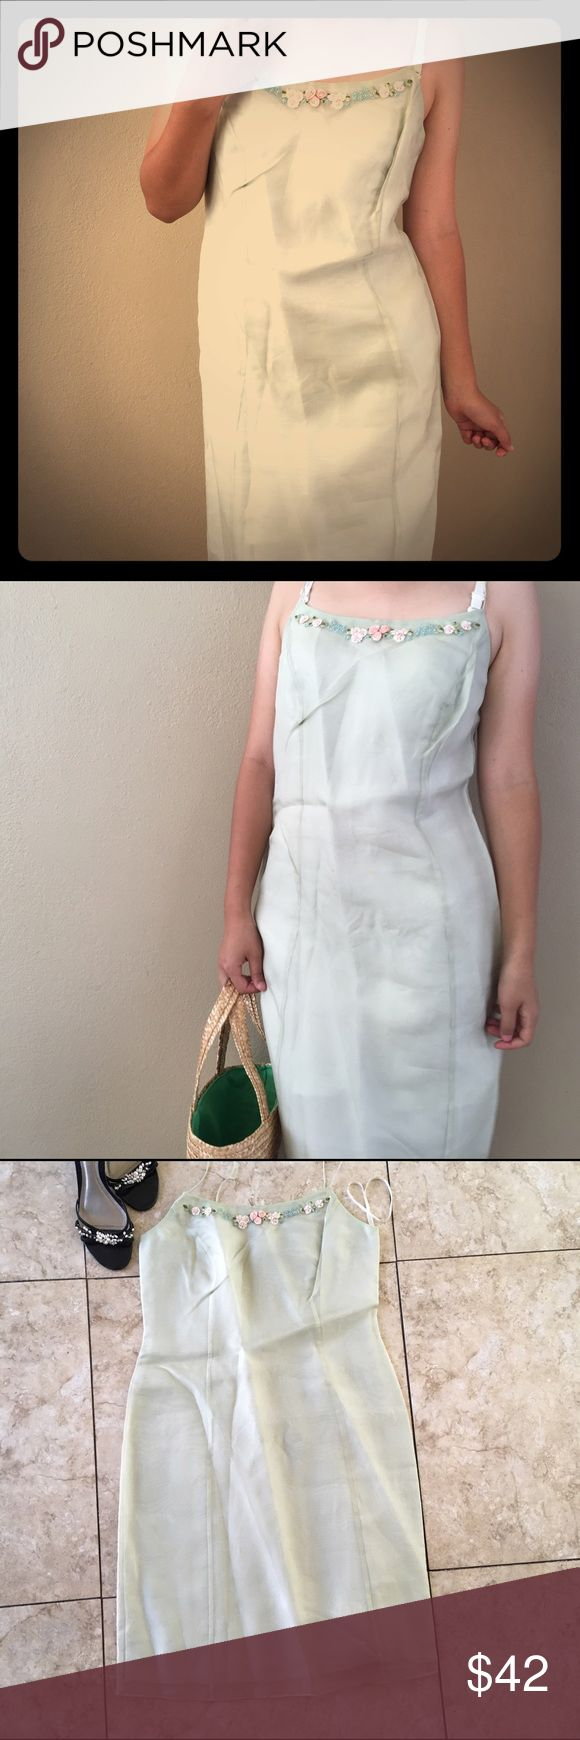 100% Silk Ann Taylor Spaghetti Strap Summer Dress NWOT - never worn before, brand new no tags! Thin & lightweight, the perfect dress for picnic, shopping, or a girls night out. Beautiful flowers lined on top. 100% silk, high quality. Midi knee length dress. Fits like small to medium :) 4 petite Ann Taylor Dresses Midi